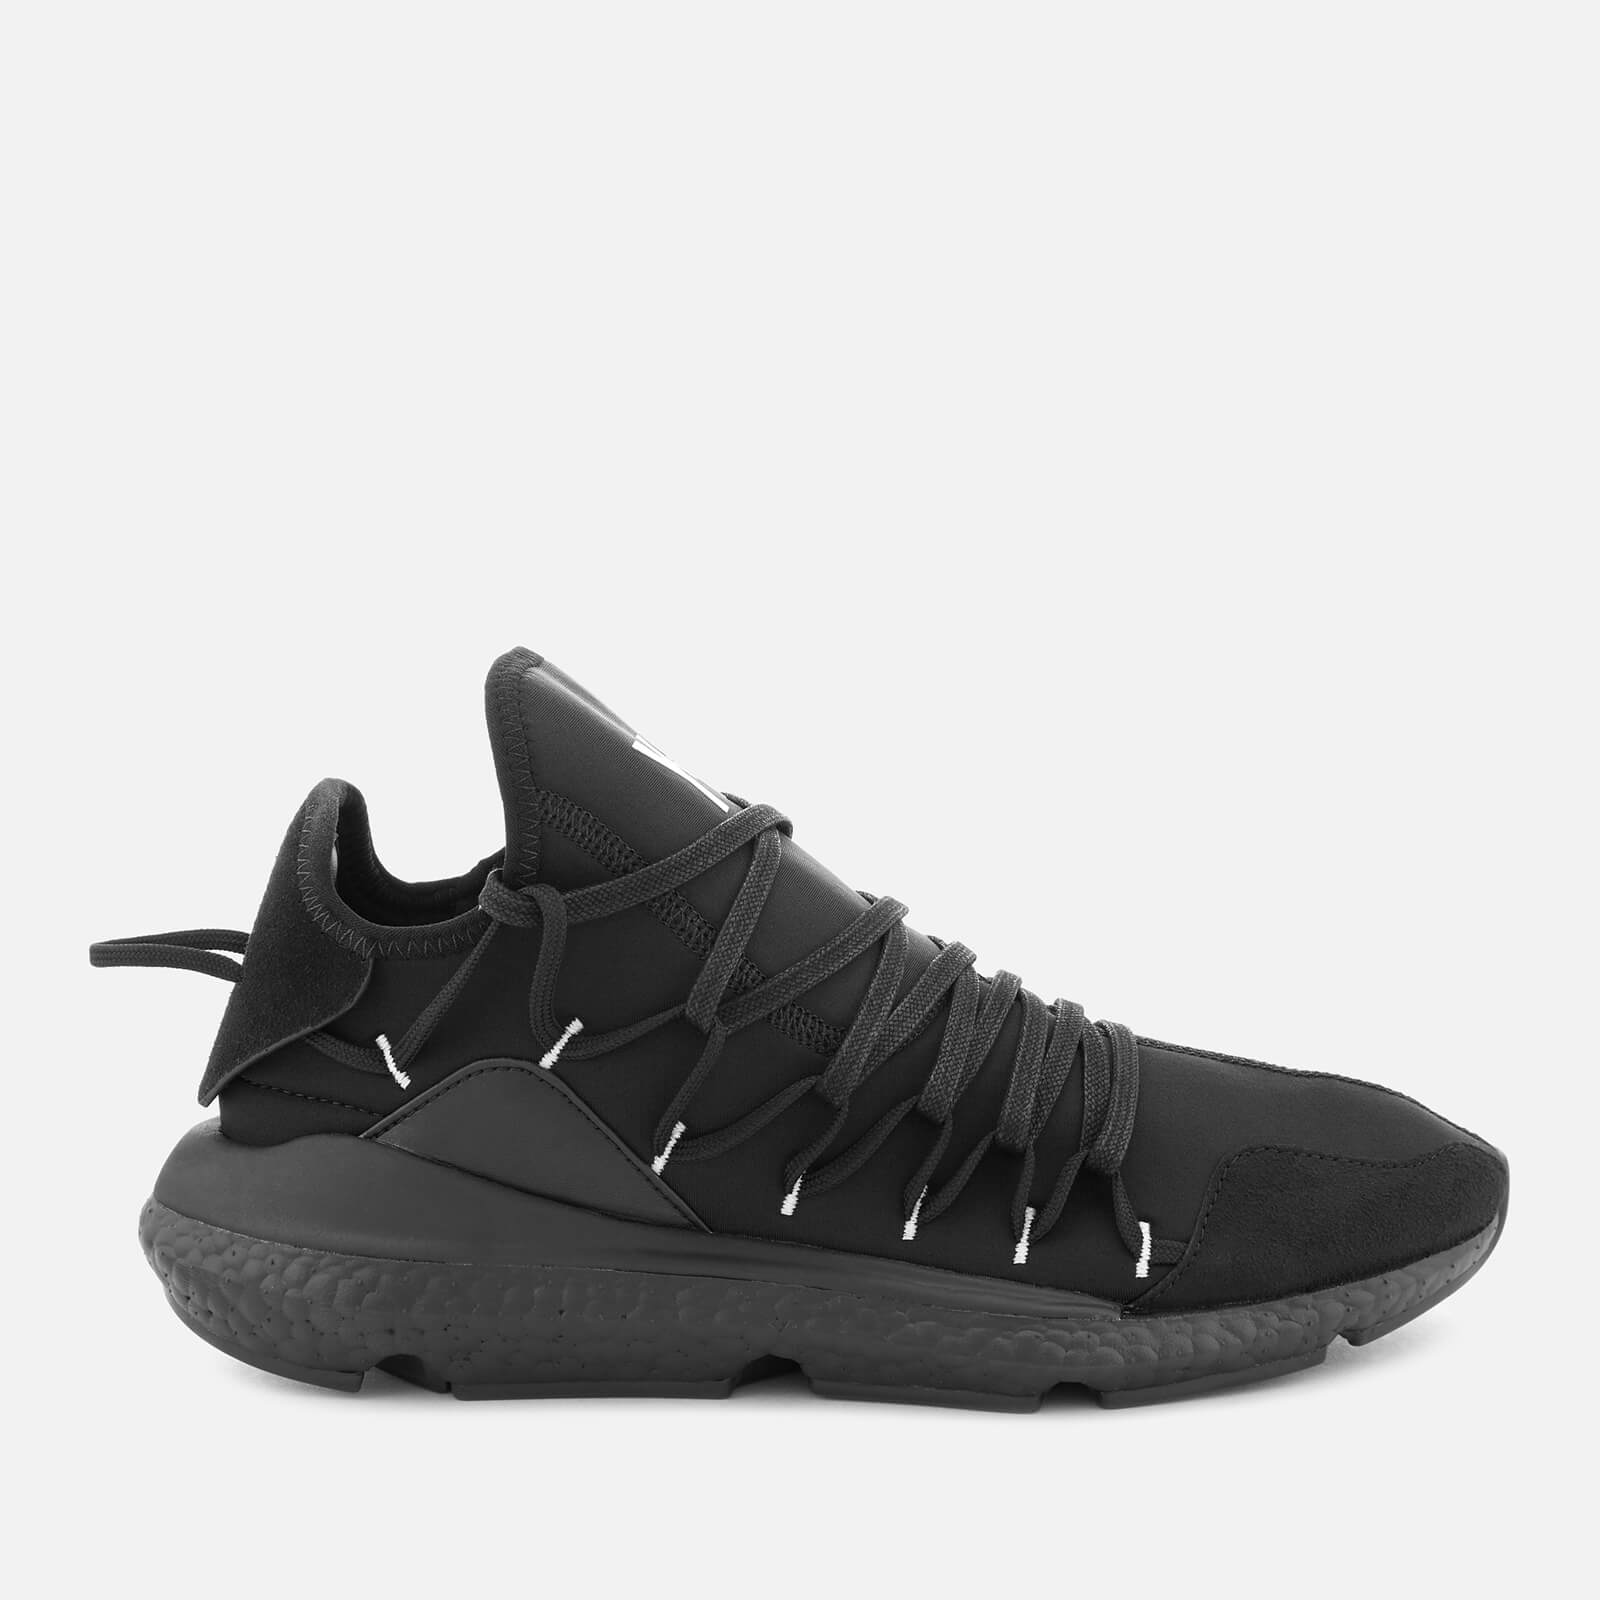 b0619faab6656 Y-3 Men s Kusari Trainers - Black Y-3 - Free UK Delivery over £50